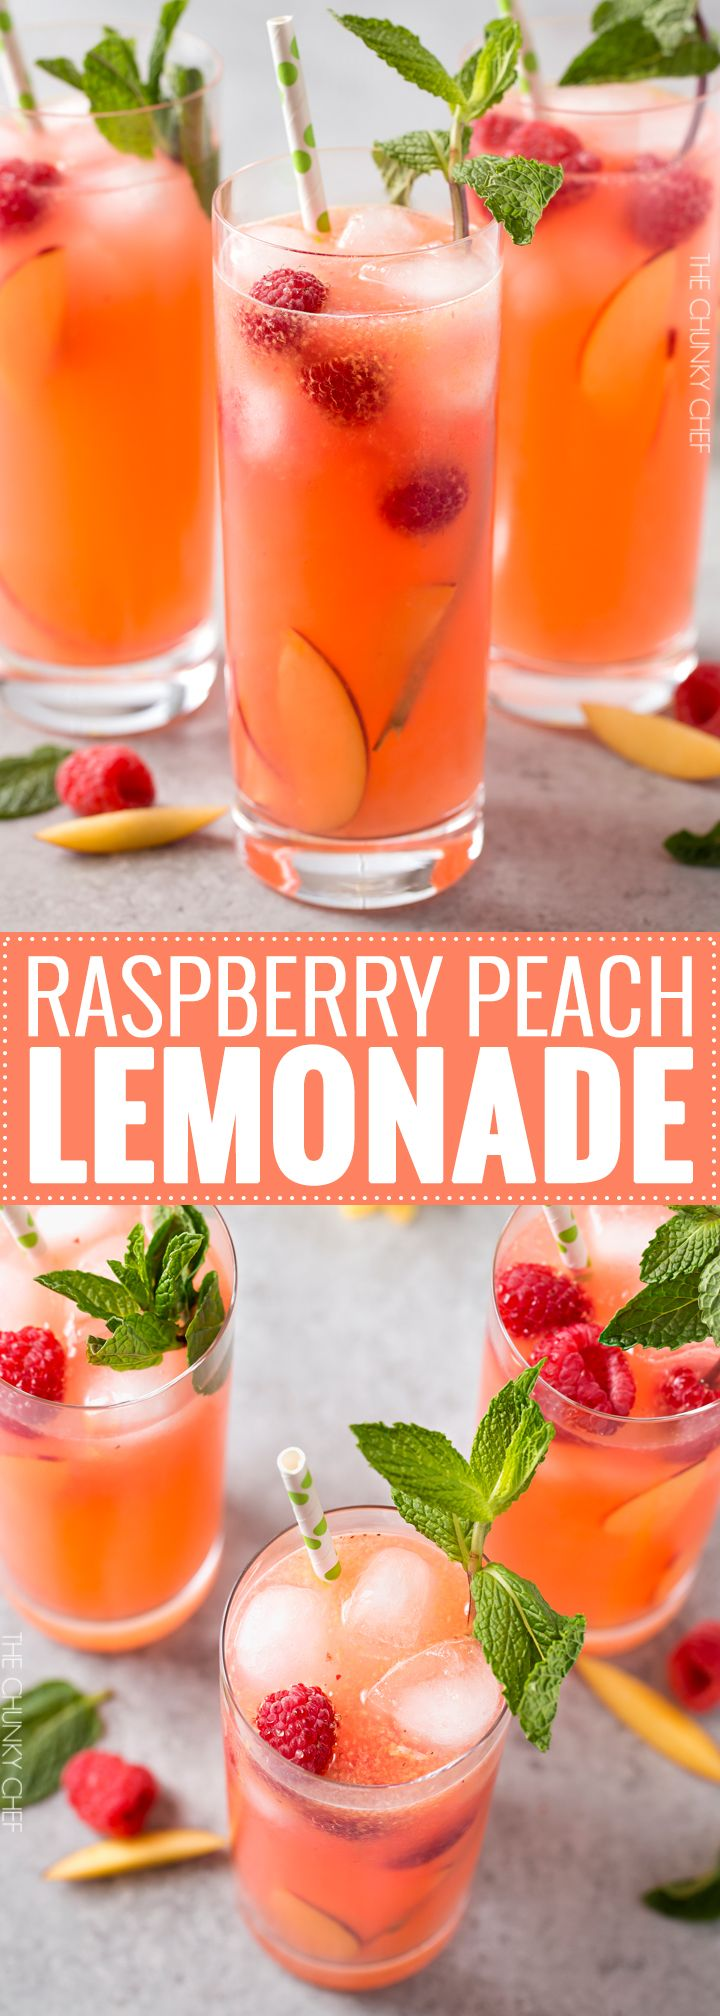 Homemade Raspberry Peach Lemonade - The Chunky Chef #refreshingsummerdrinks